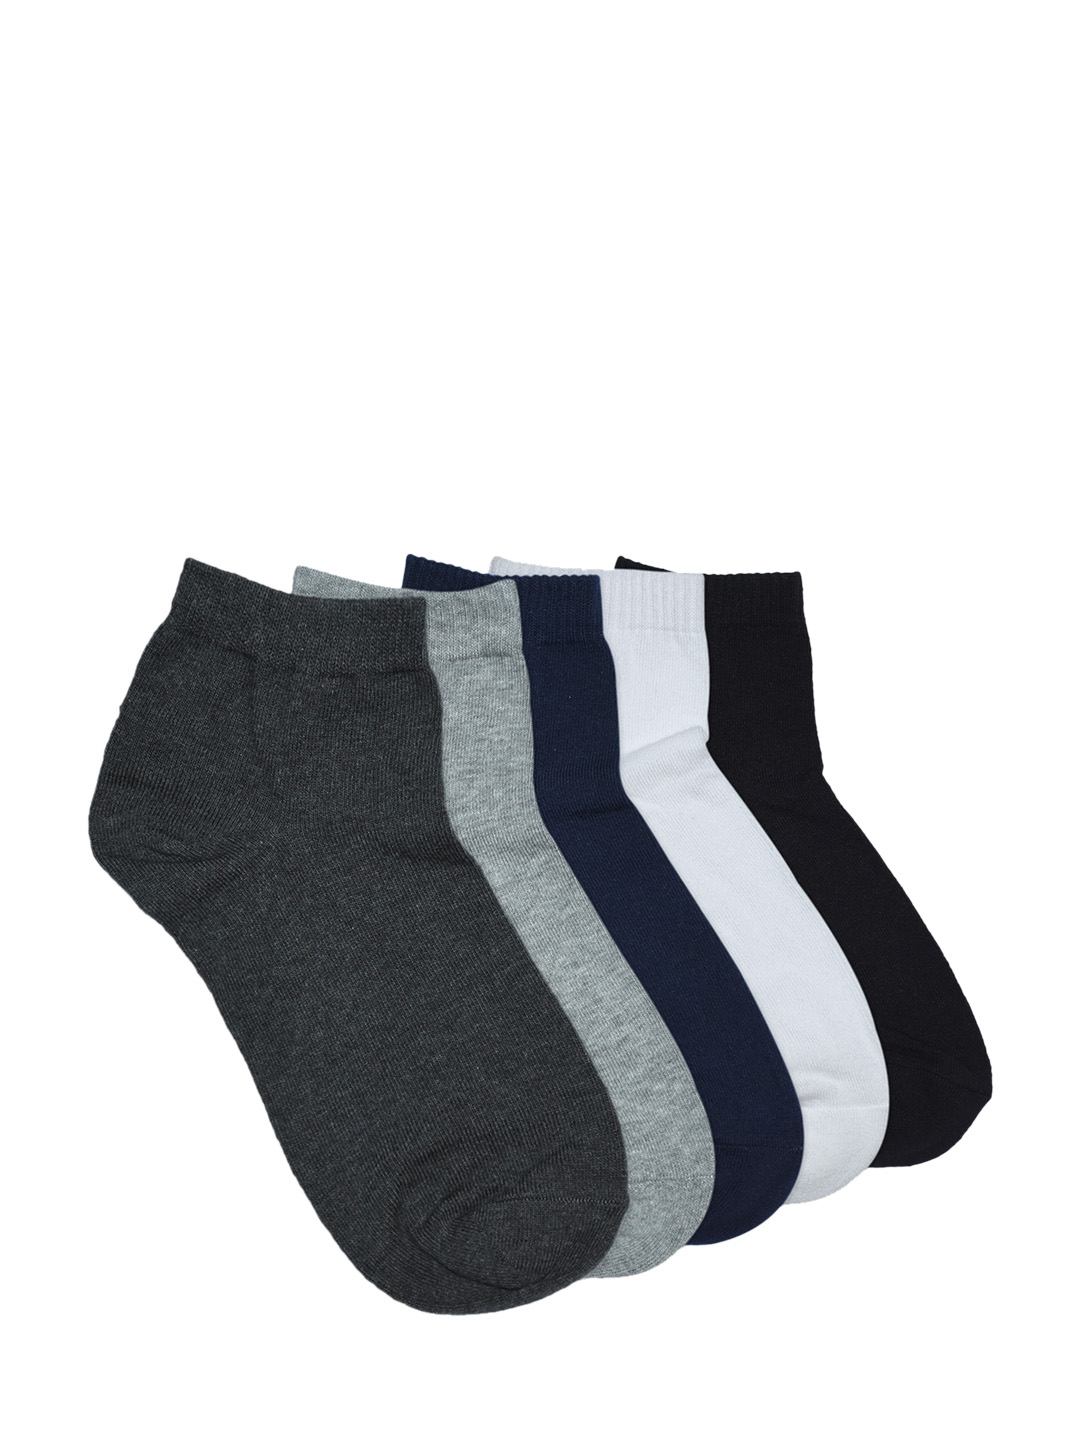 Balenzia Men Pack of 5 Assorted Solid Ankle Length Socks